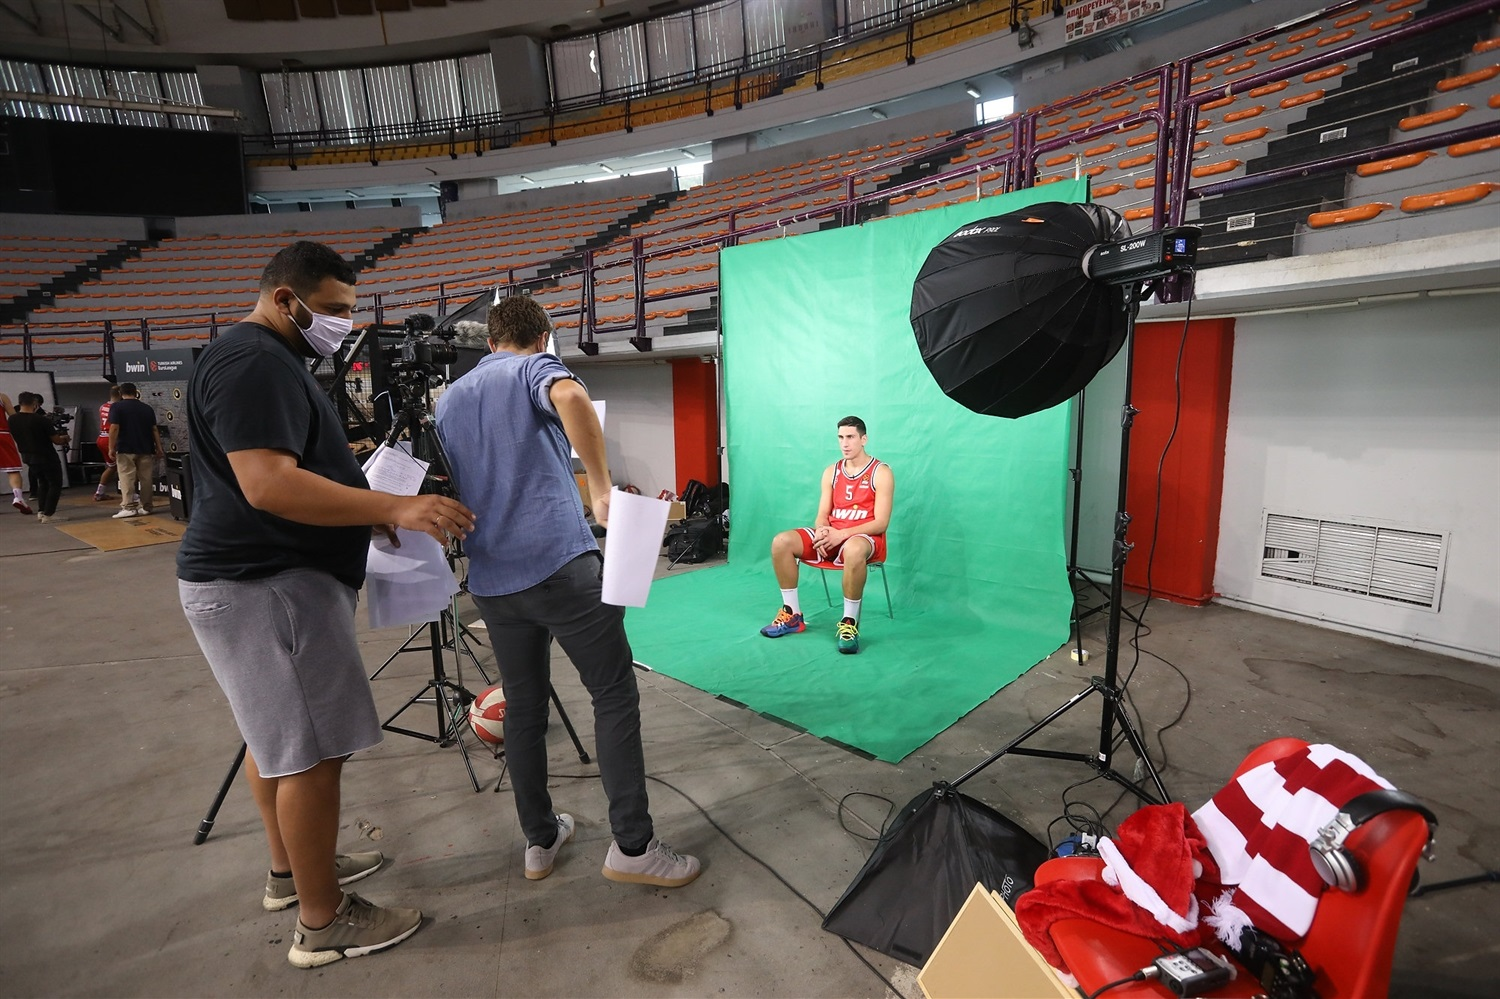 Giannoulis Larentzakis - Olympiacos Piraeus media Day 2020 - EB20